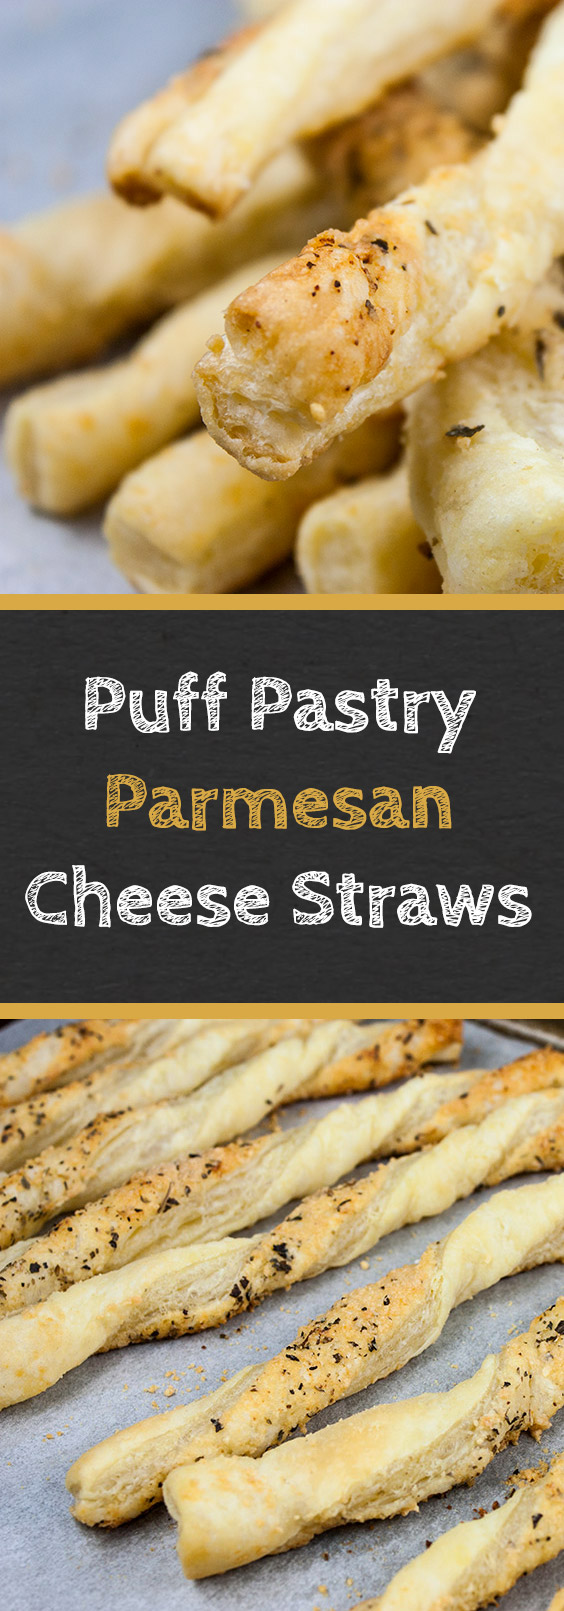 Puff Pastry Parmesan Cheese Straws - Flaky, puff pastry sprinkled with Parmesan Gruyere, garlic, and herbs! You just can't go wrong with this quick and easy appetizer! #cocktails #snack #party